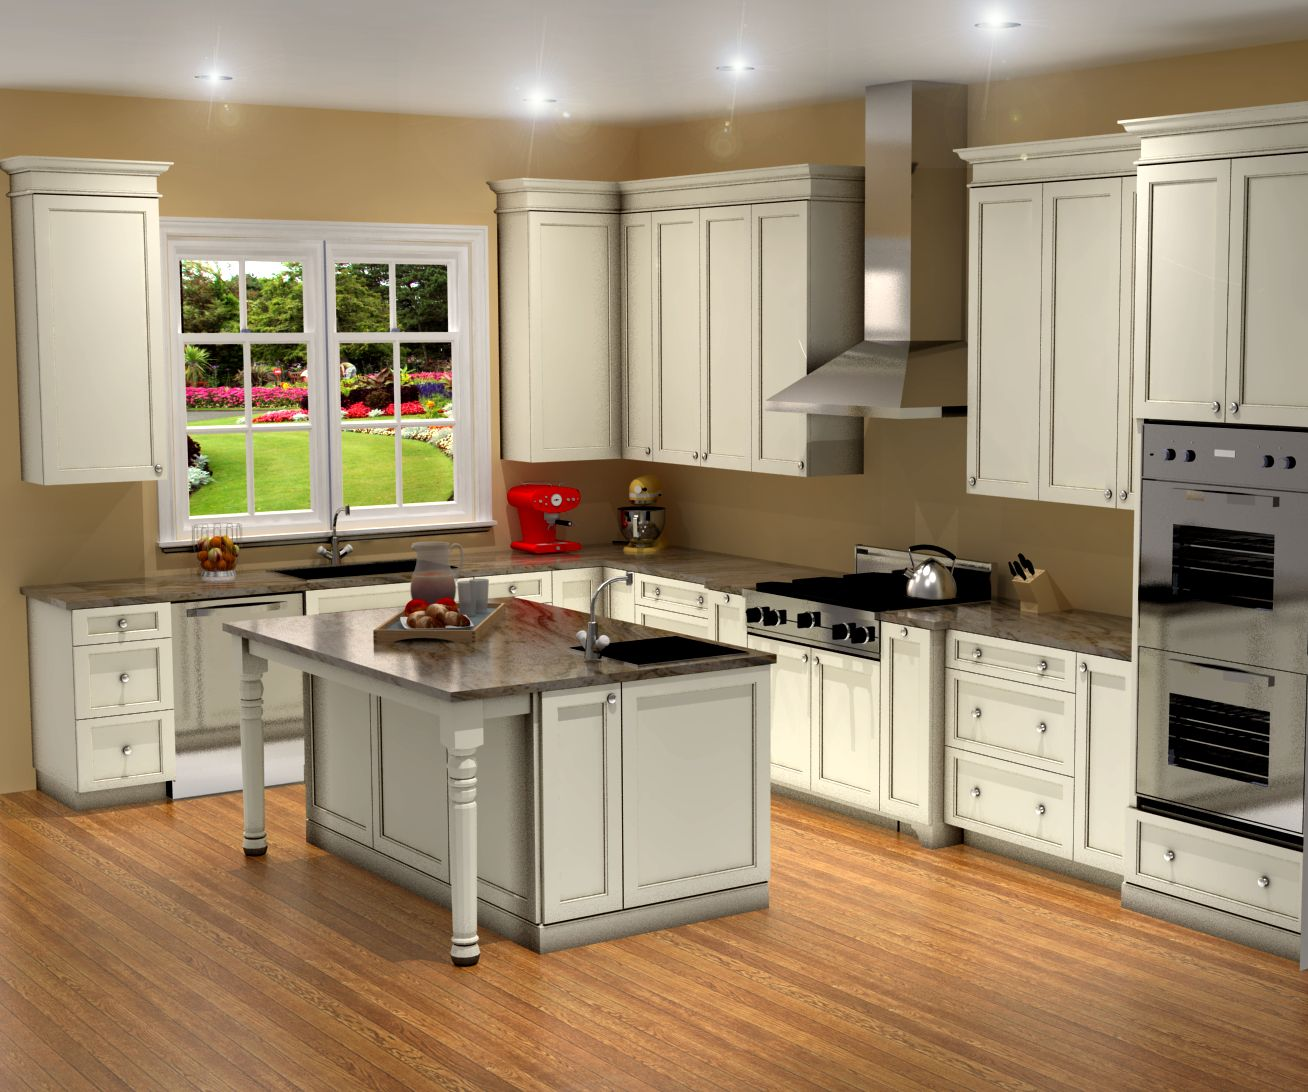 Traditional white kitchen design / 3D rendering | Nick Miller Design